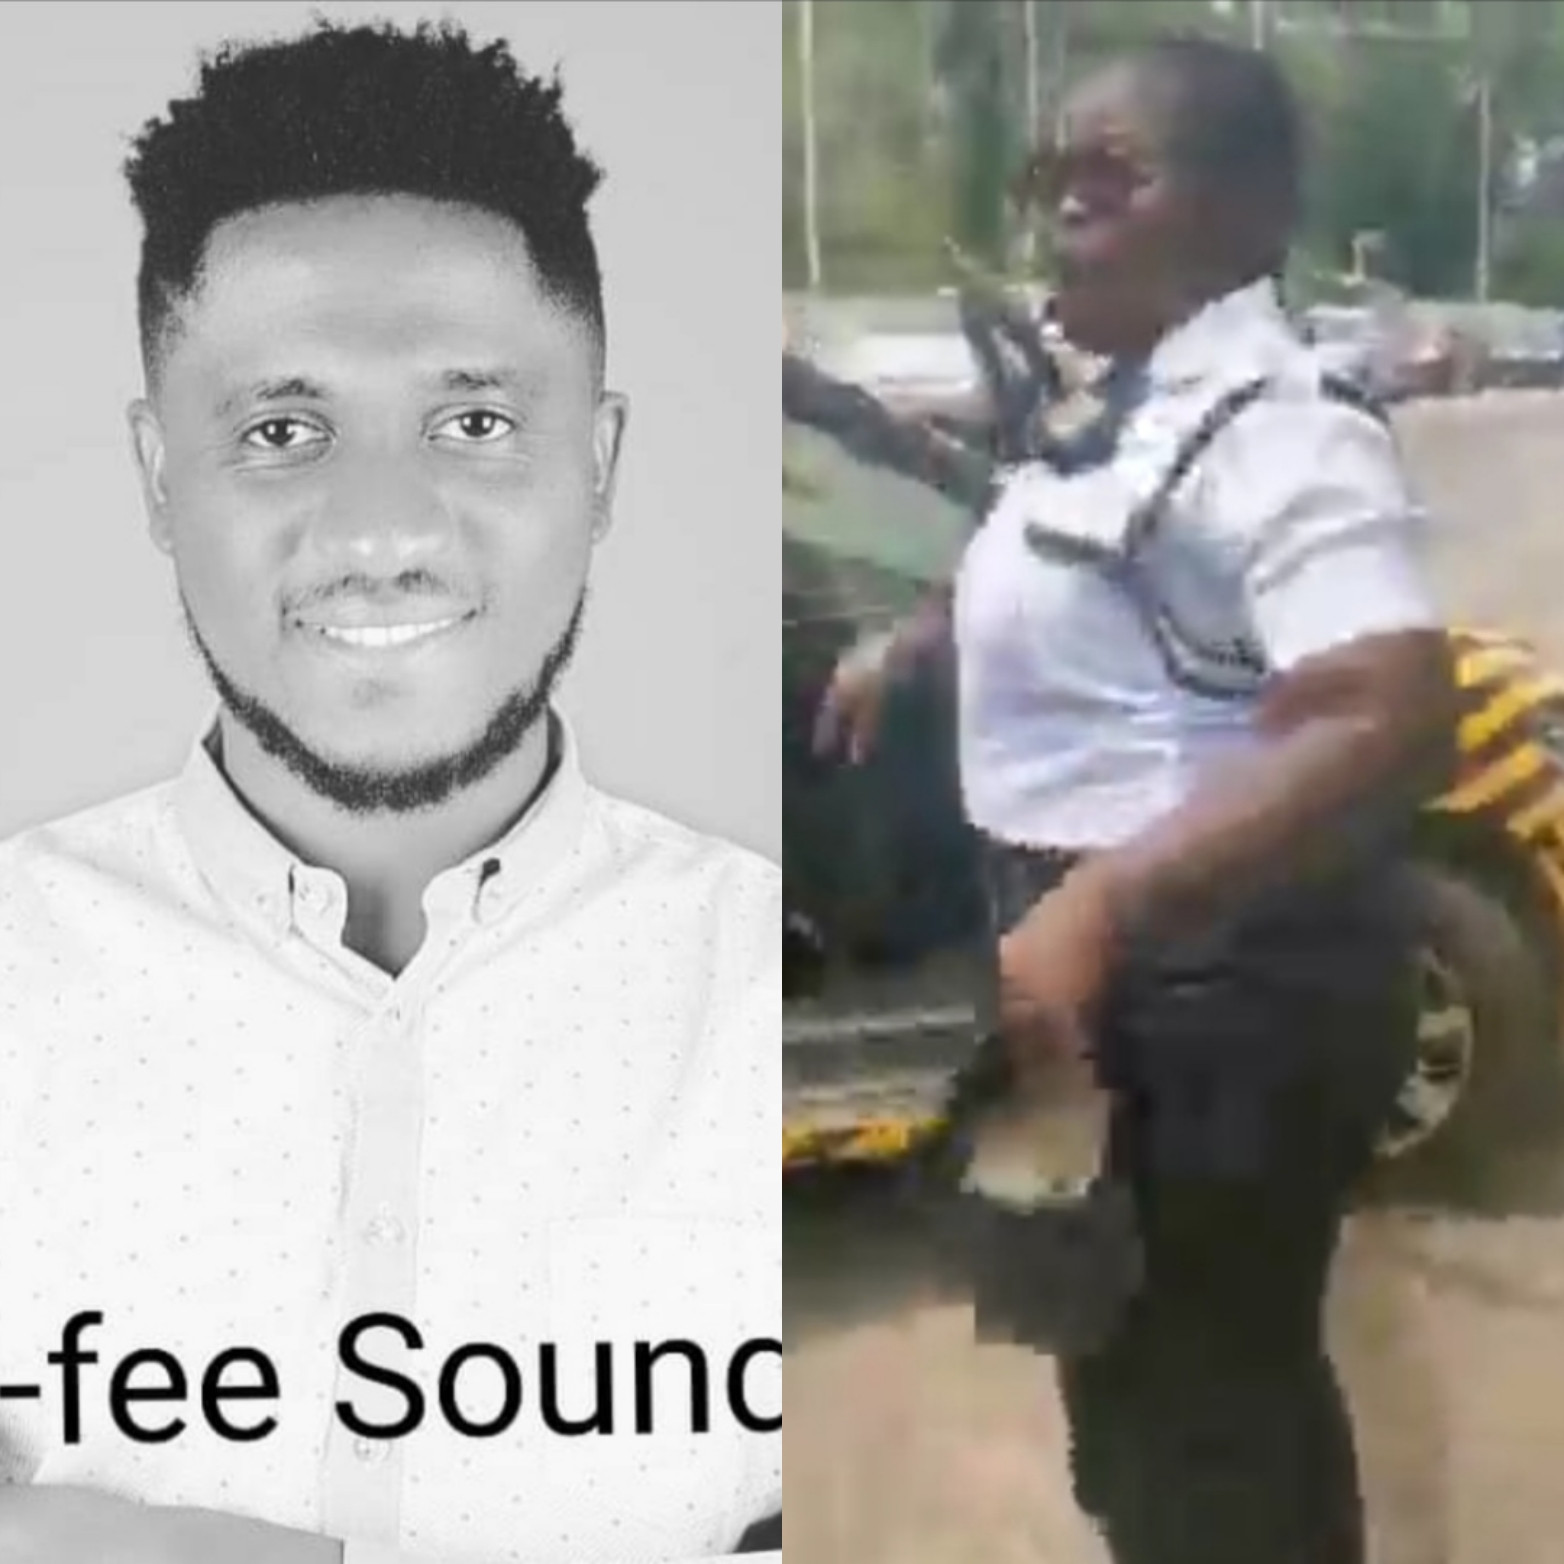 Gospel singer I-fee Ajayi accuses VIO officer of assaulting him, his wife, and kids (video)